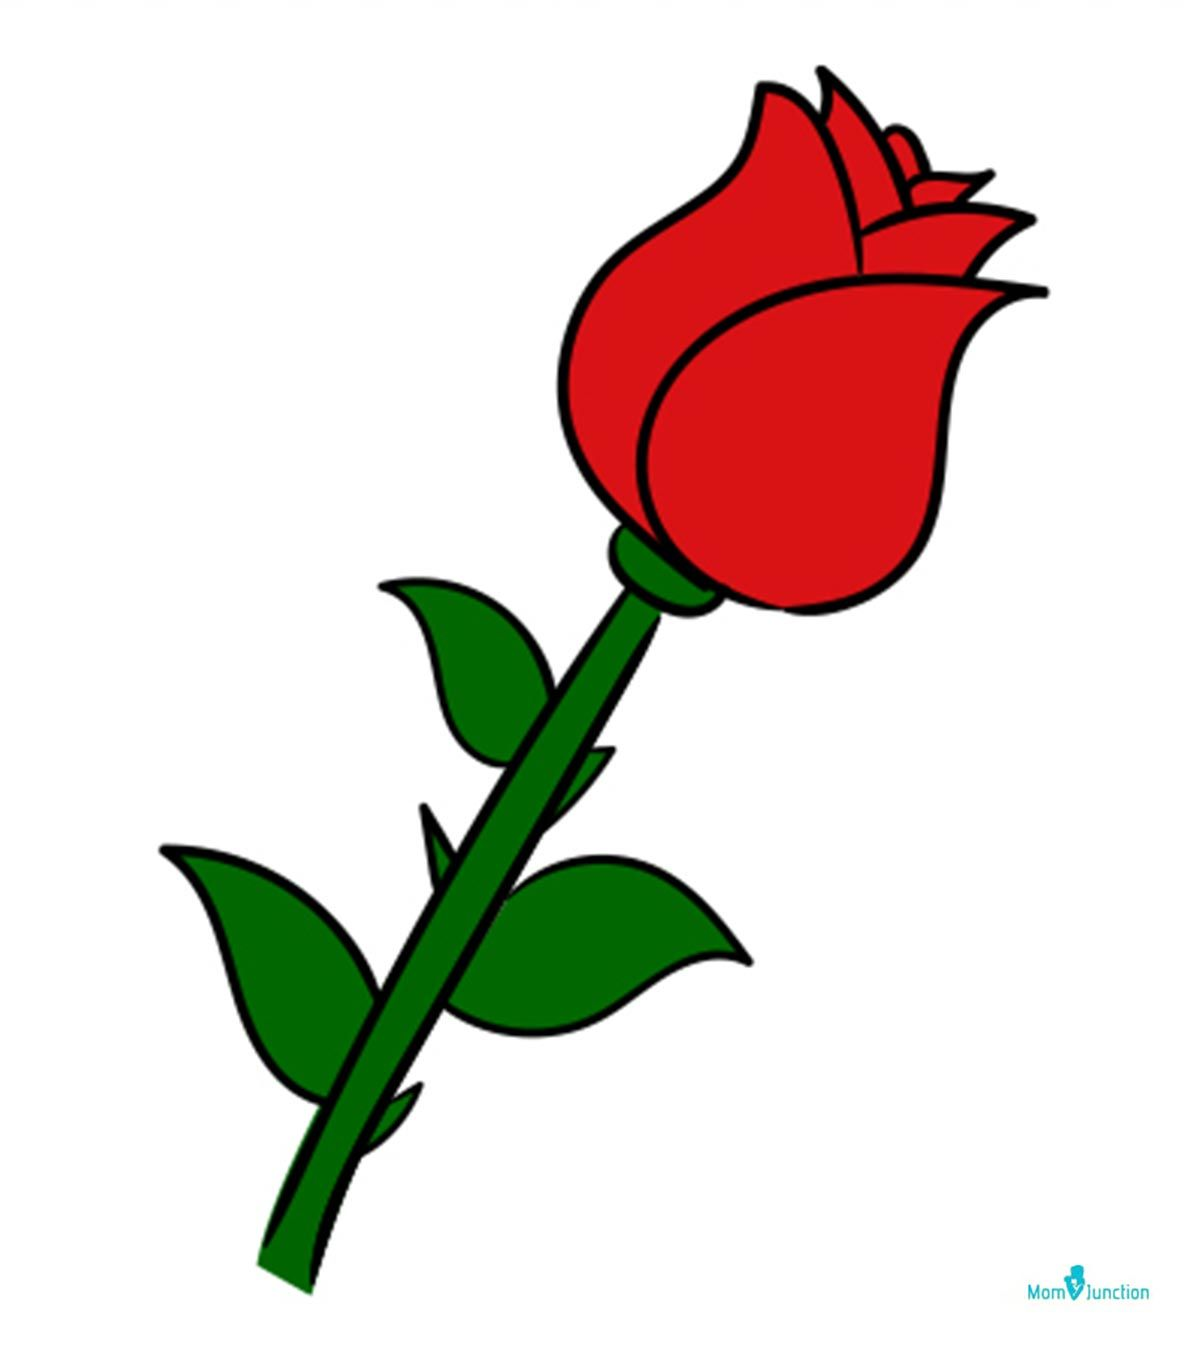 How To Draw A Rose Easy Step By Step Guide In 2020 Flower Drawing Flower Drawing Tutorials Drawings